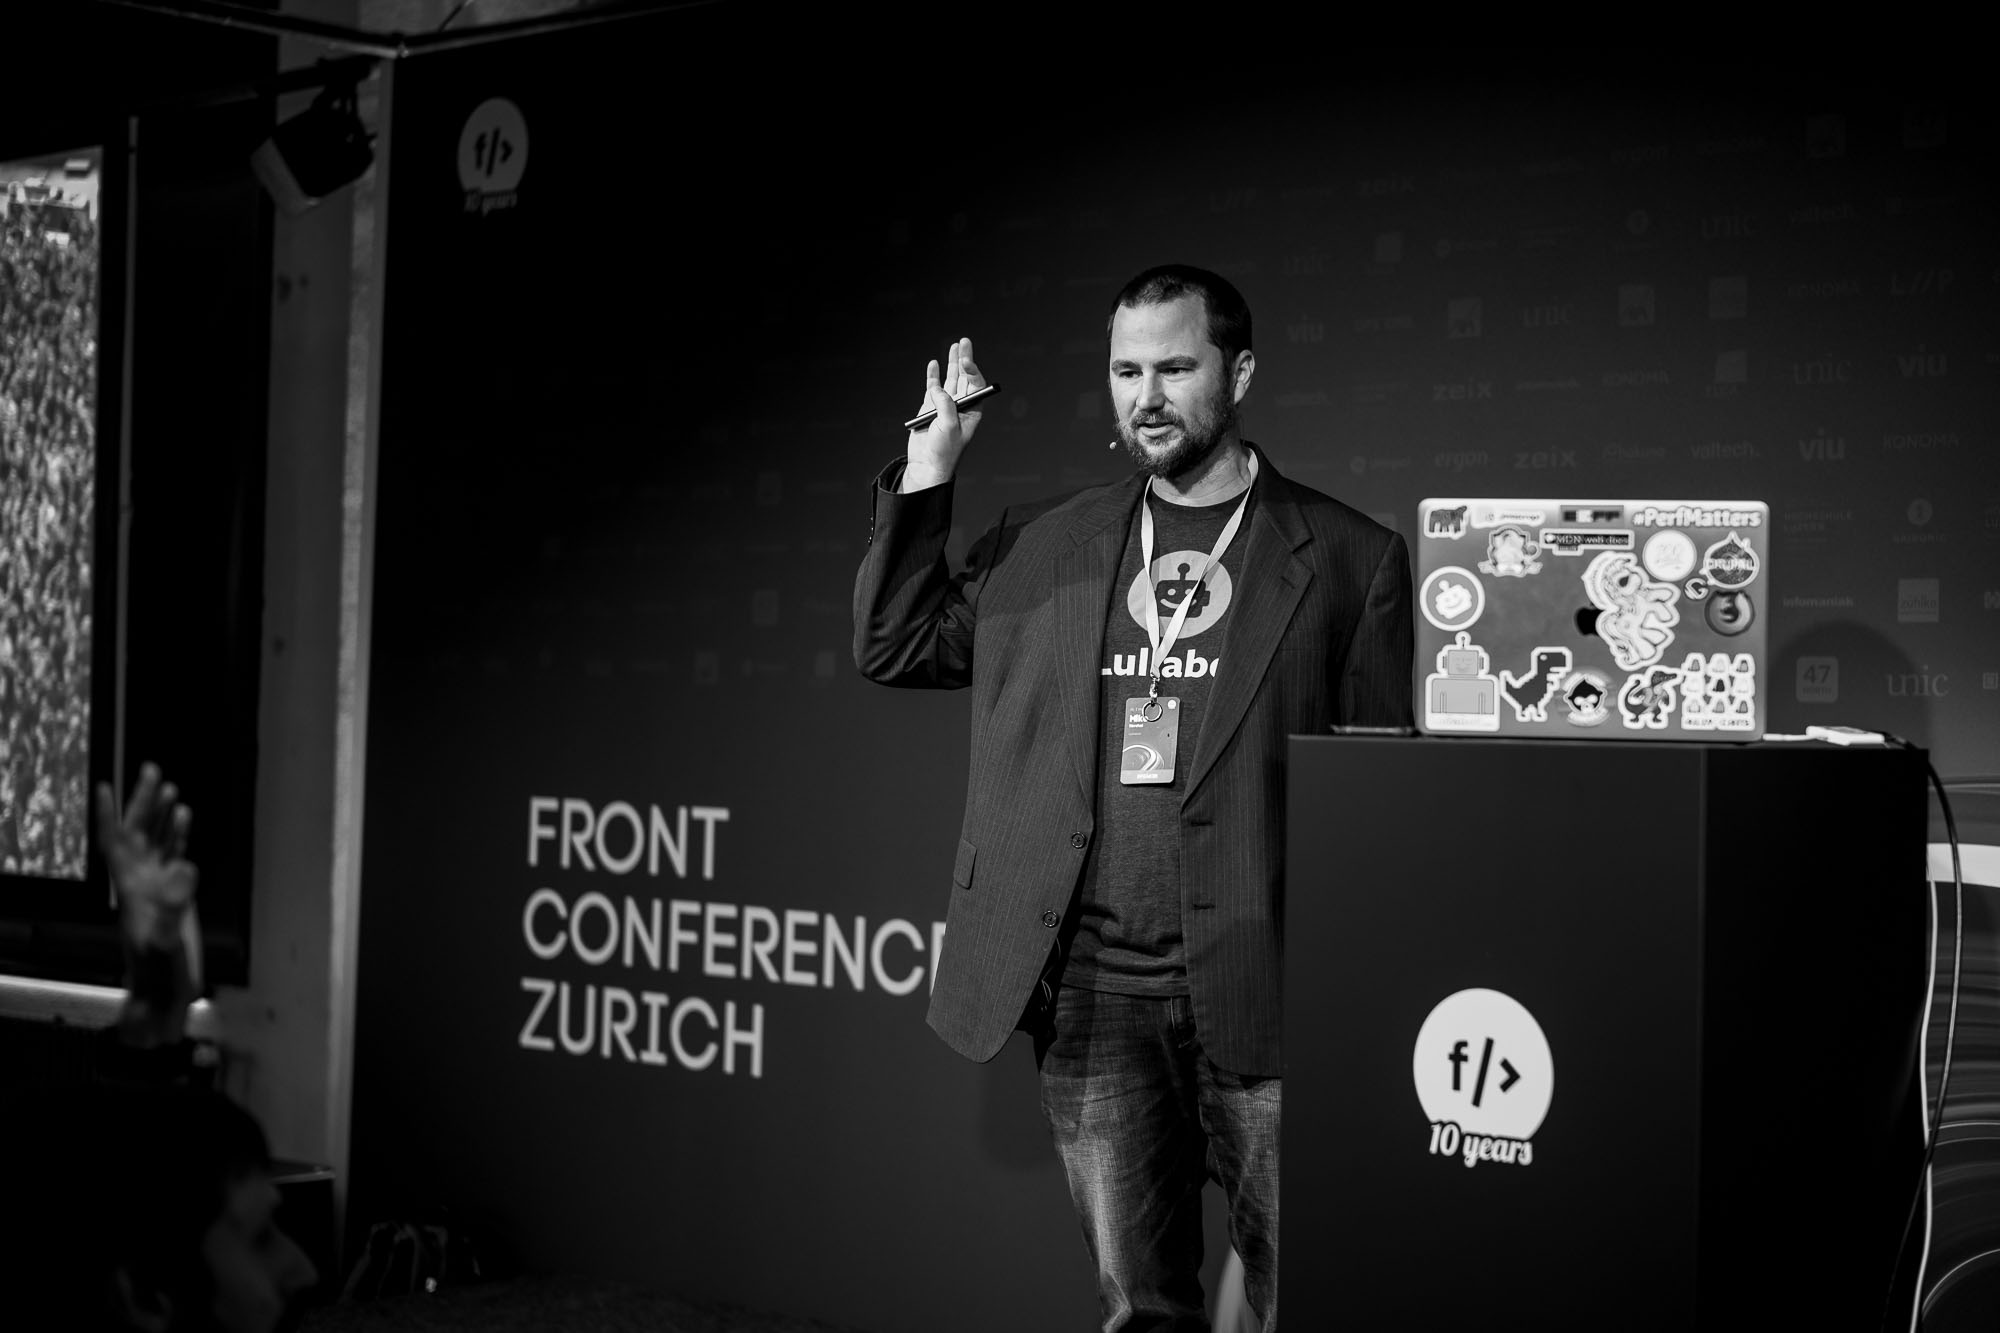 Mike Herchel on stage at Front Conference 2021